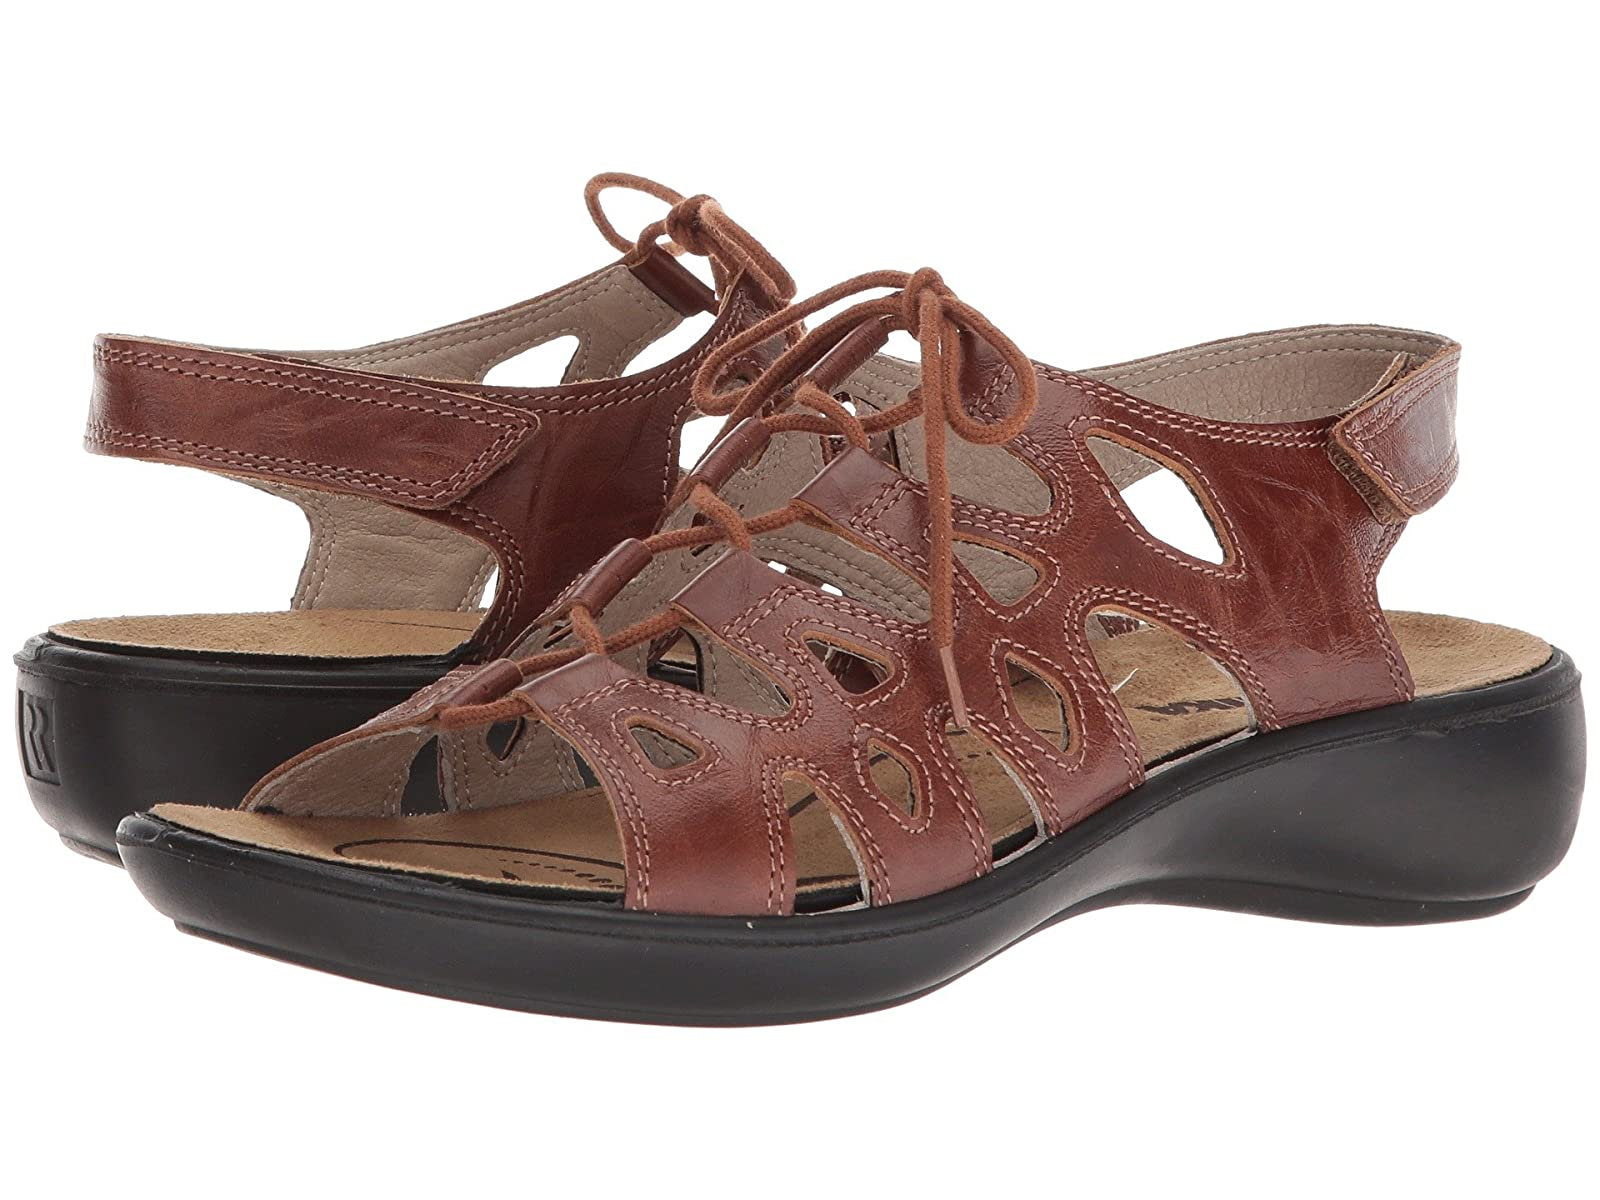 Romika Ibiza 77Atmospheric grades have affordable shoes